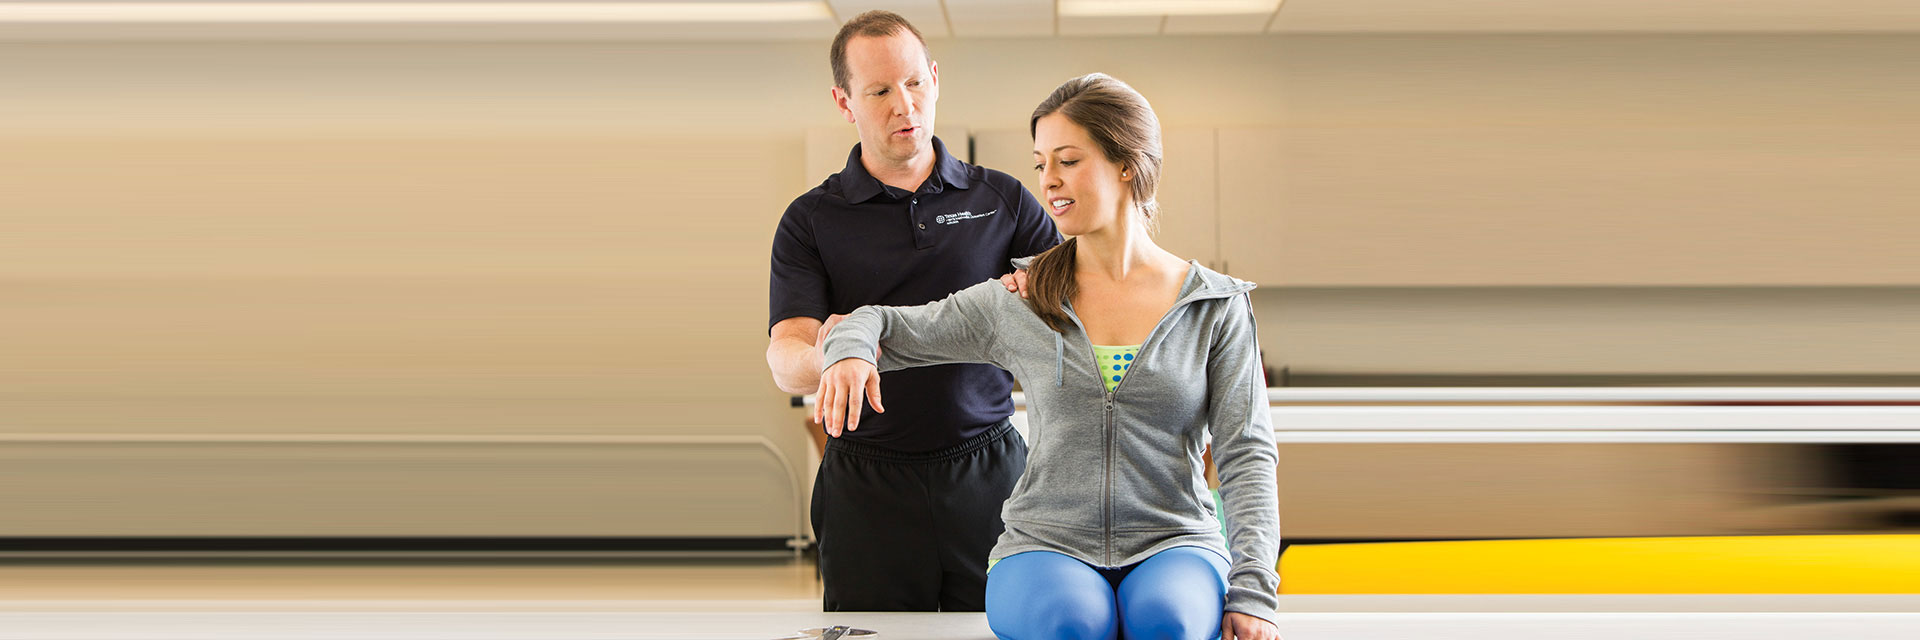 Physical Therapist with Patients